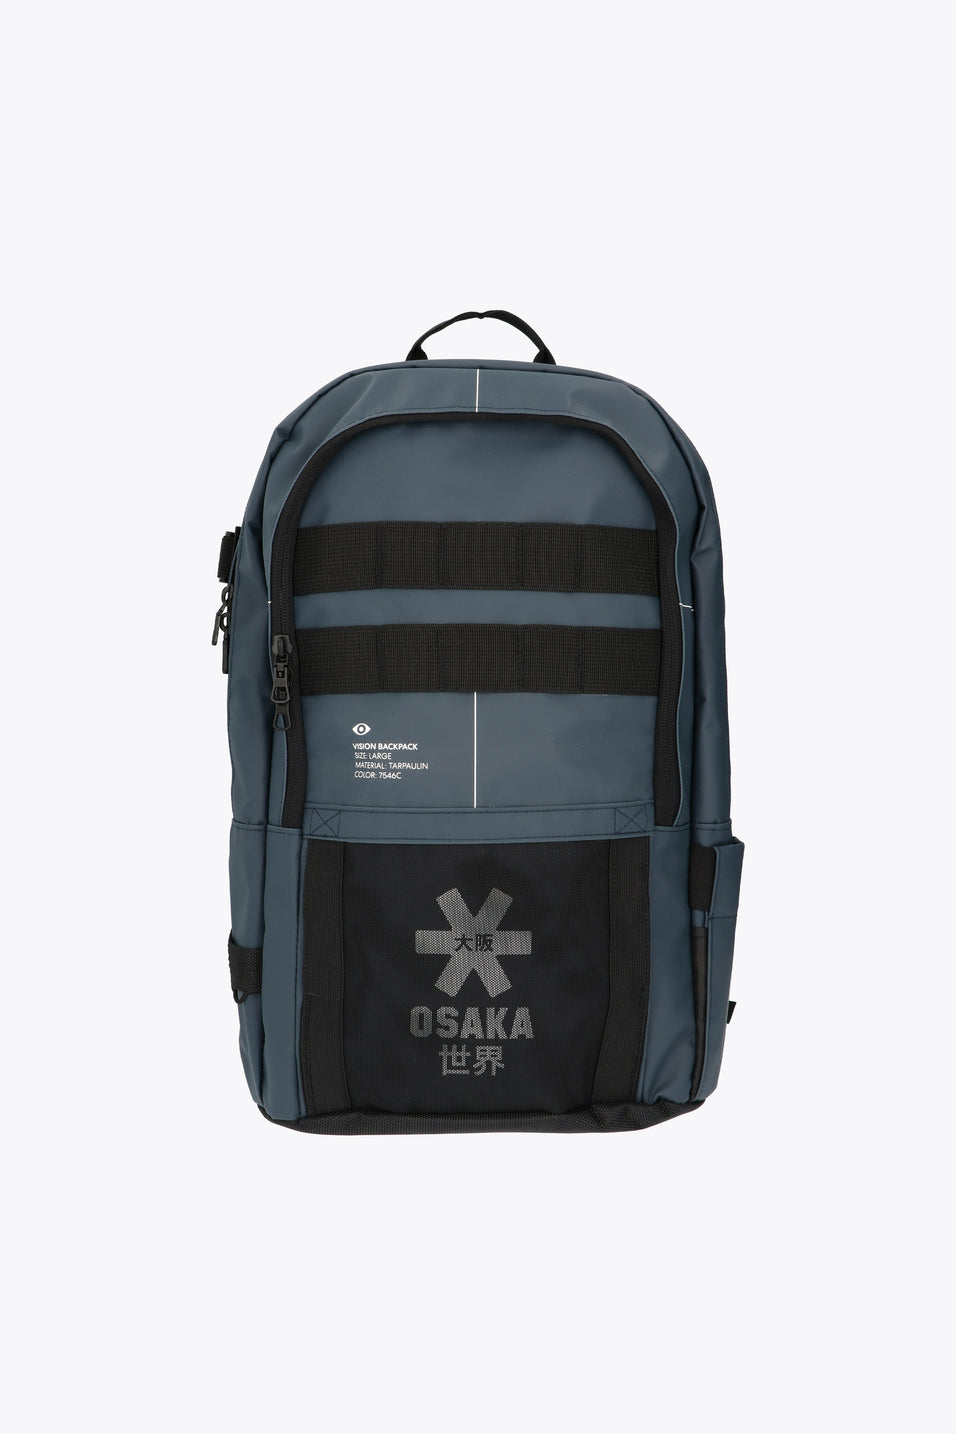 osaka hockey backpack